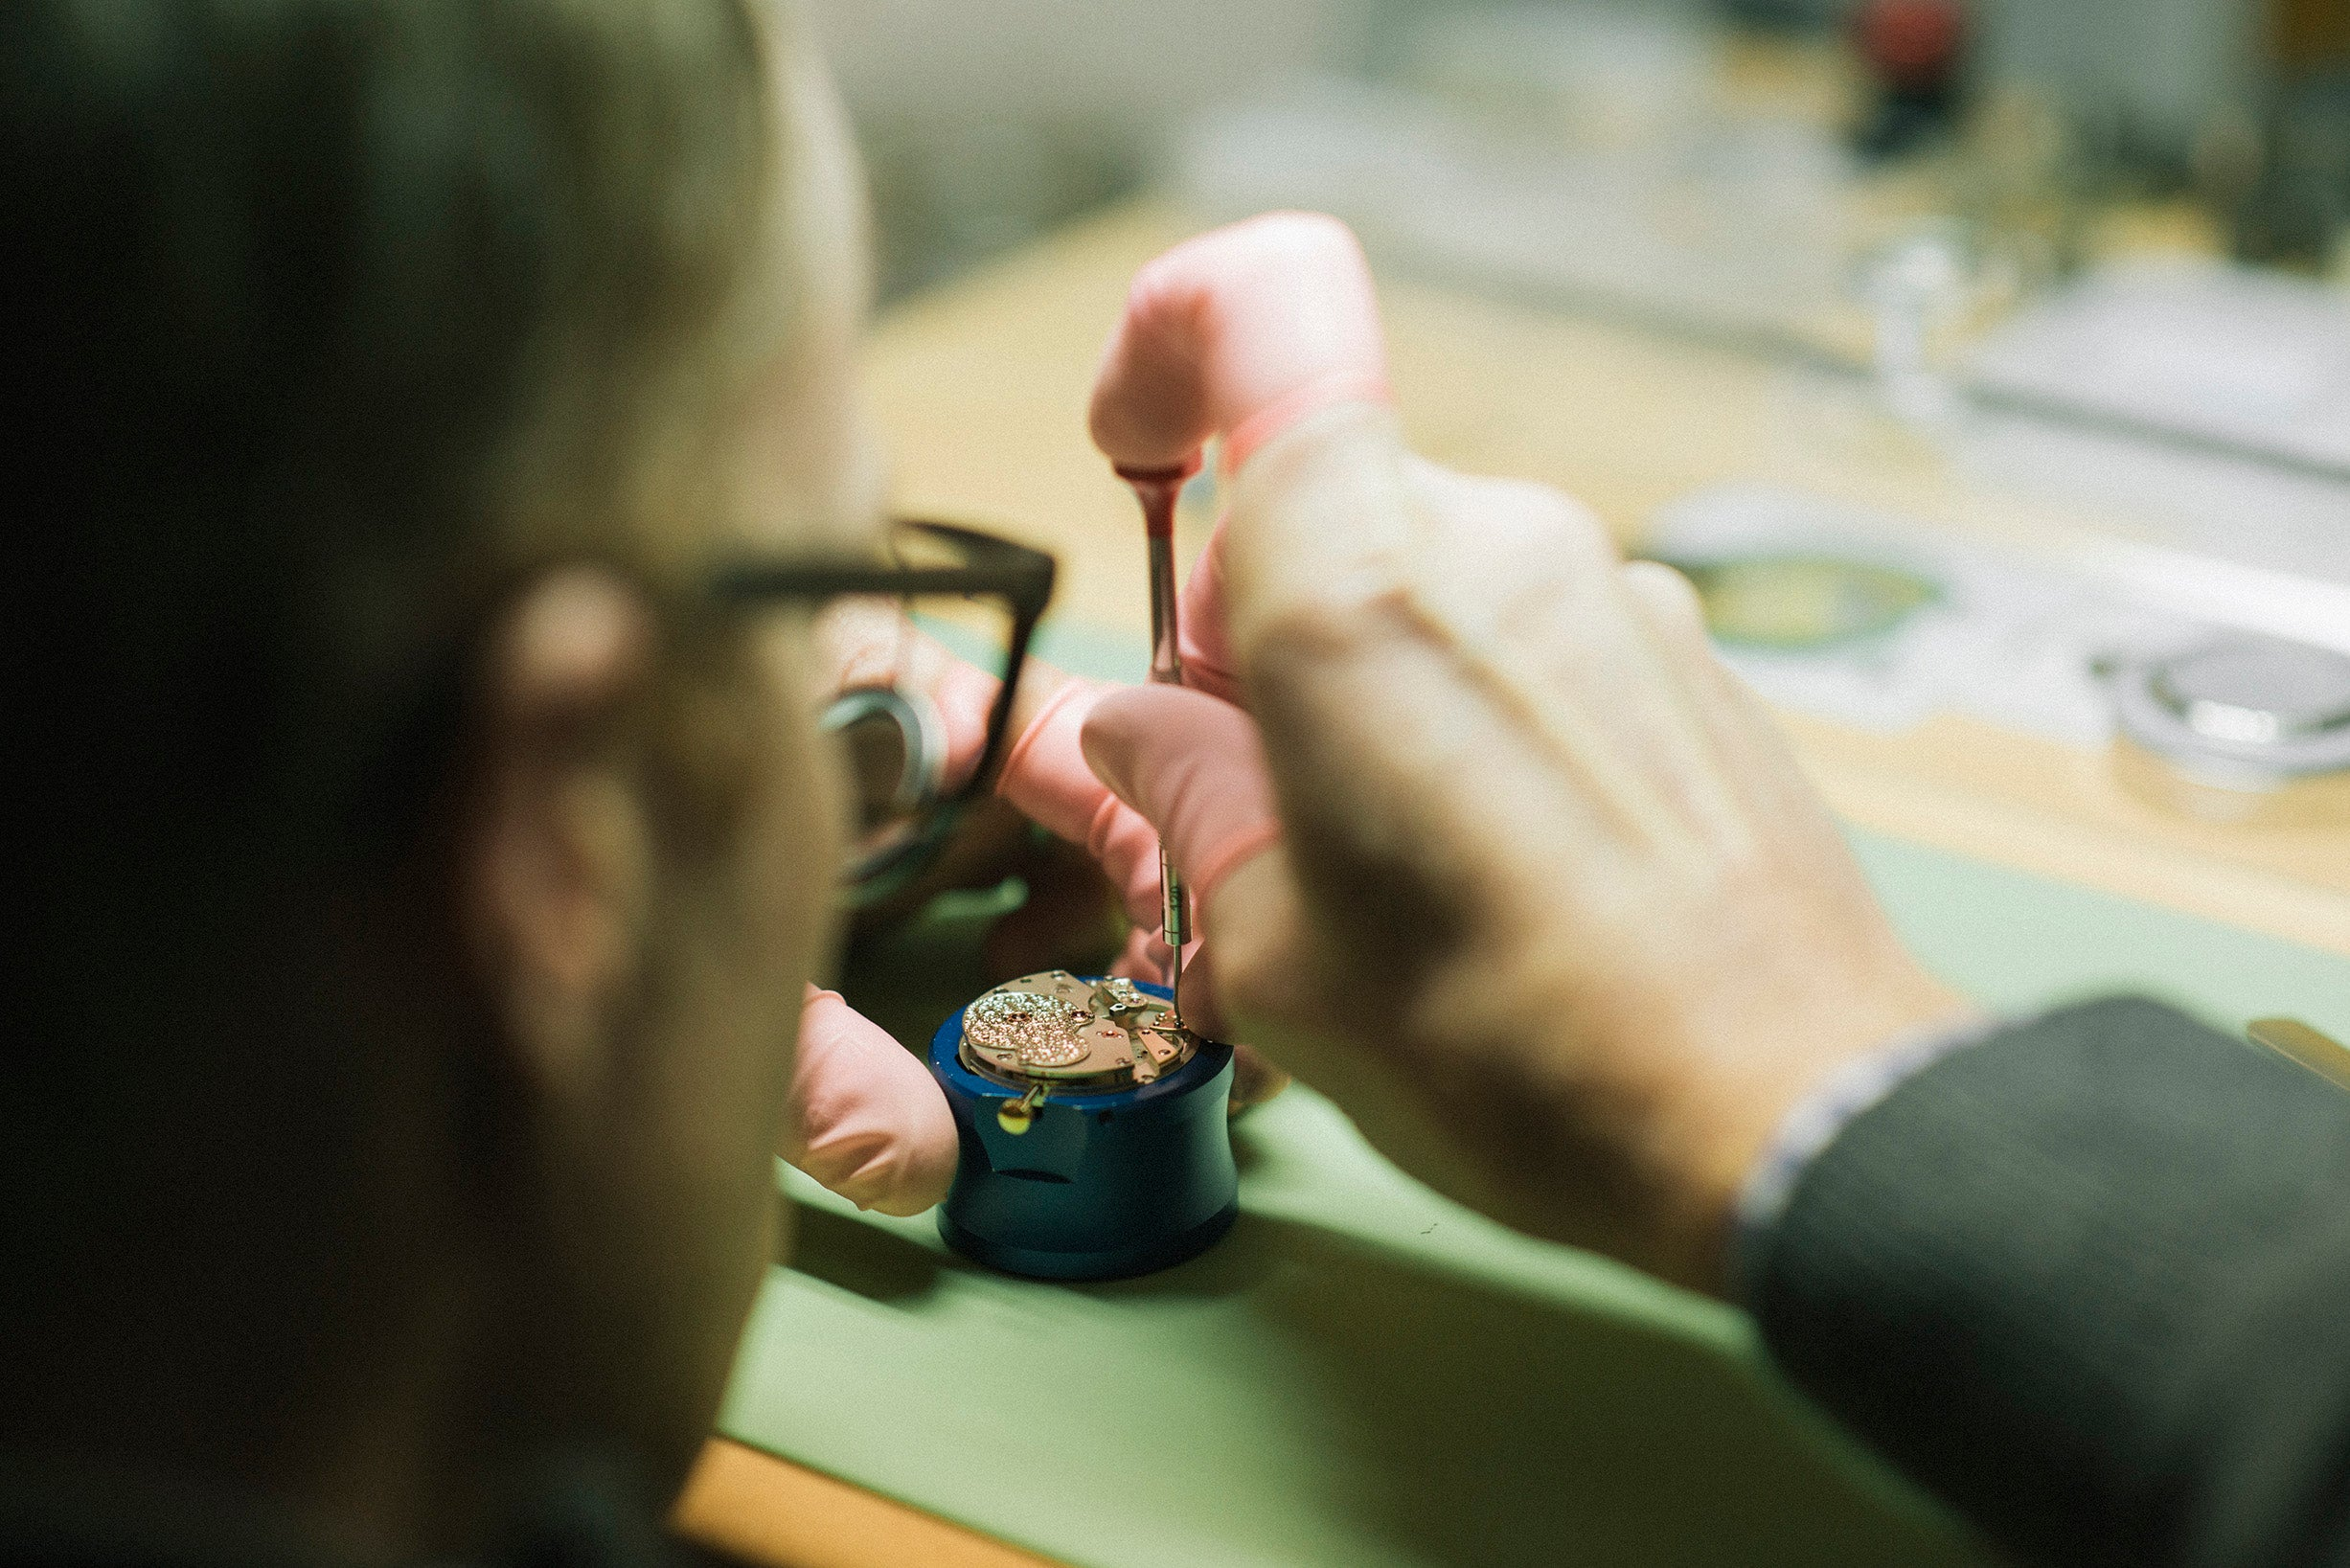 Roger W. Smith watchmaker at the bench building a wristwatch movement for A Collected Man London